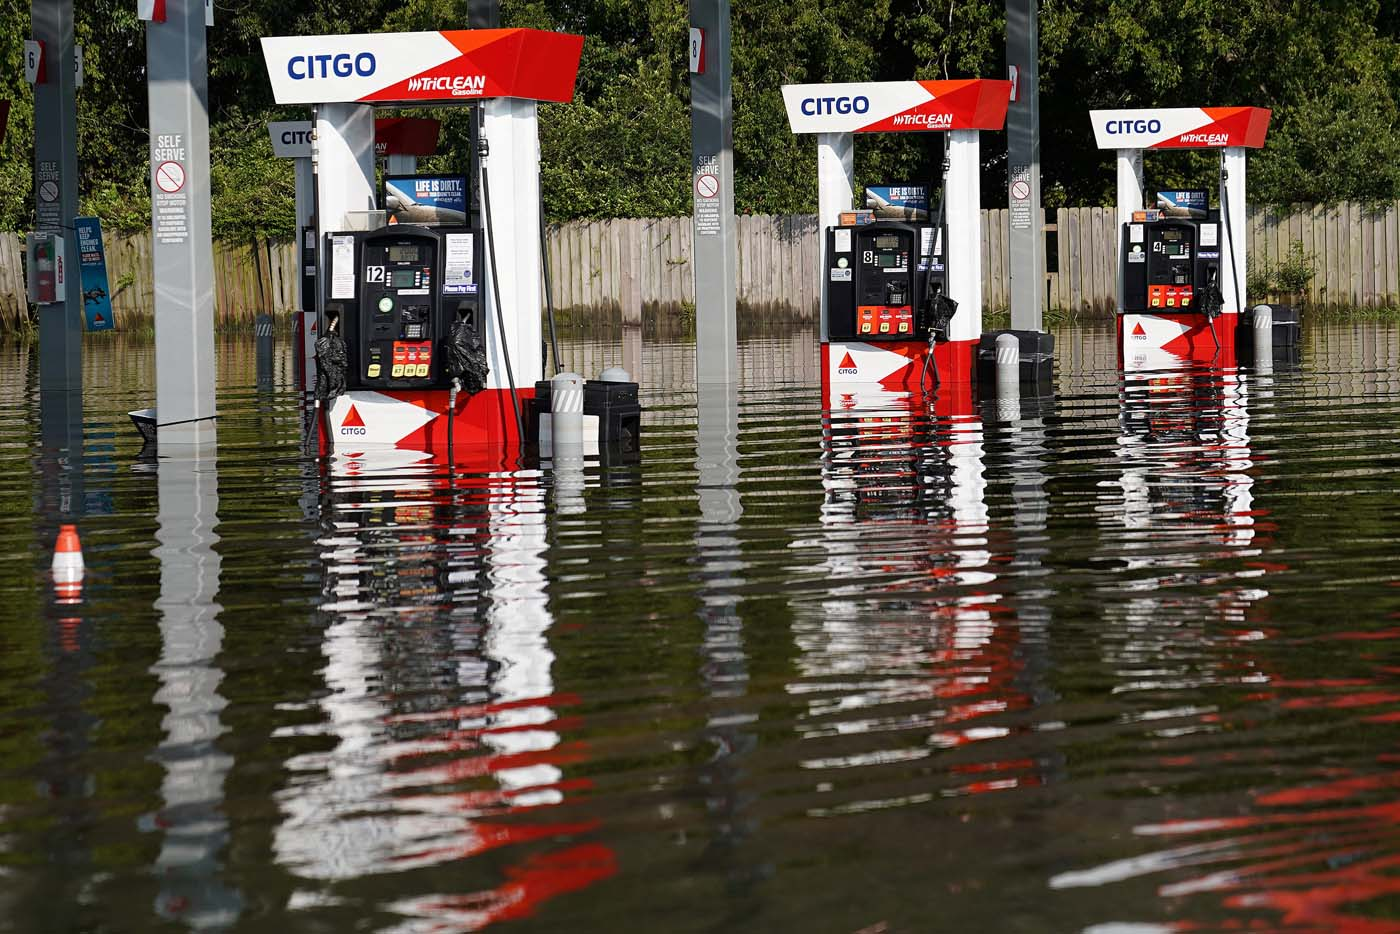 A flooded Citgo gas station is pictured as a result of Tropical Storm Harvey in Port Arthur, Texas, U.S., August 31, 2017. REUTERS/Carlo Allegri